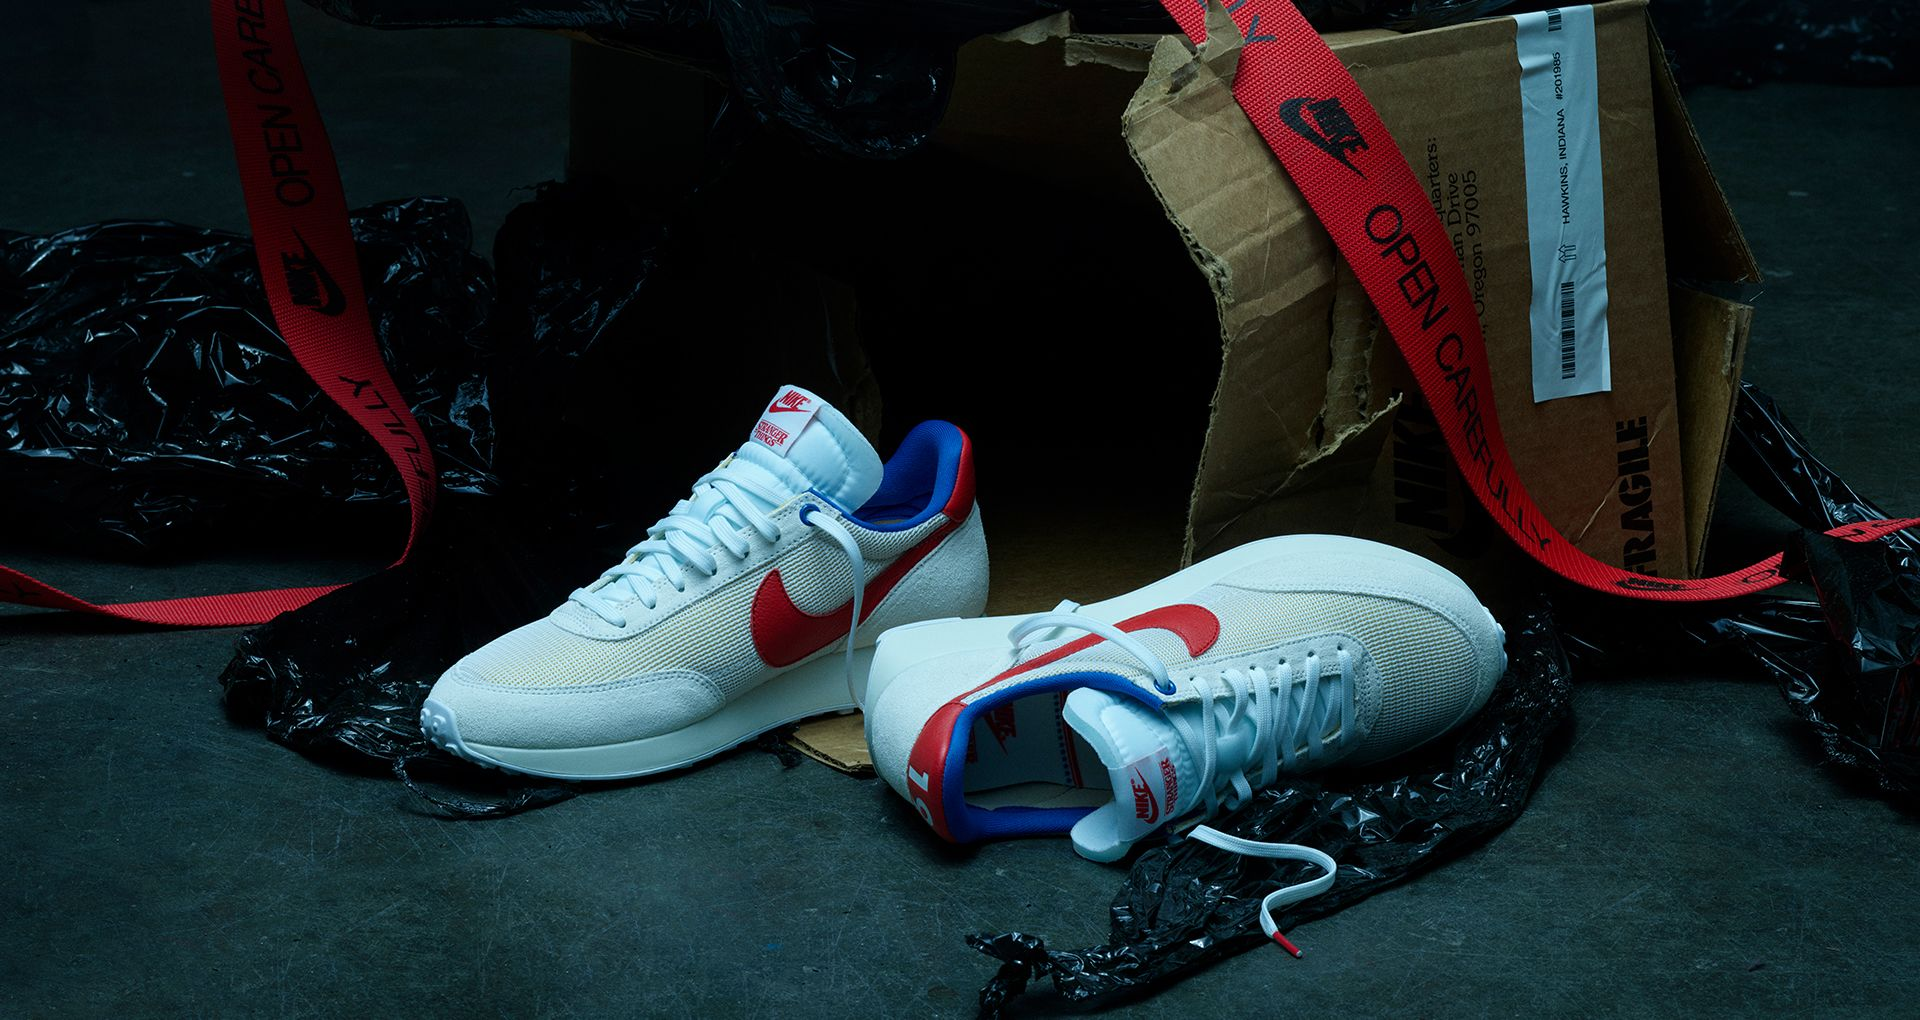 Nike Stranger Things Collection | The Coolector